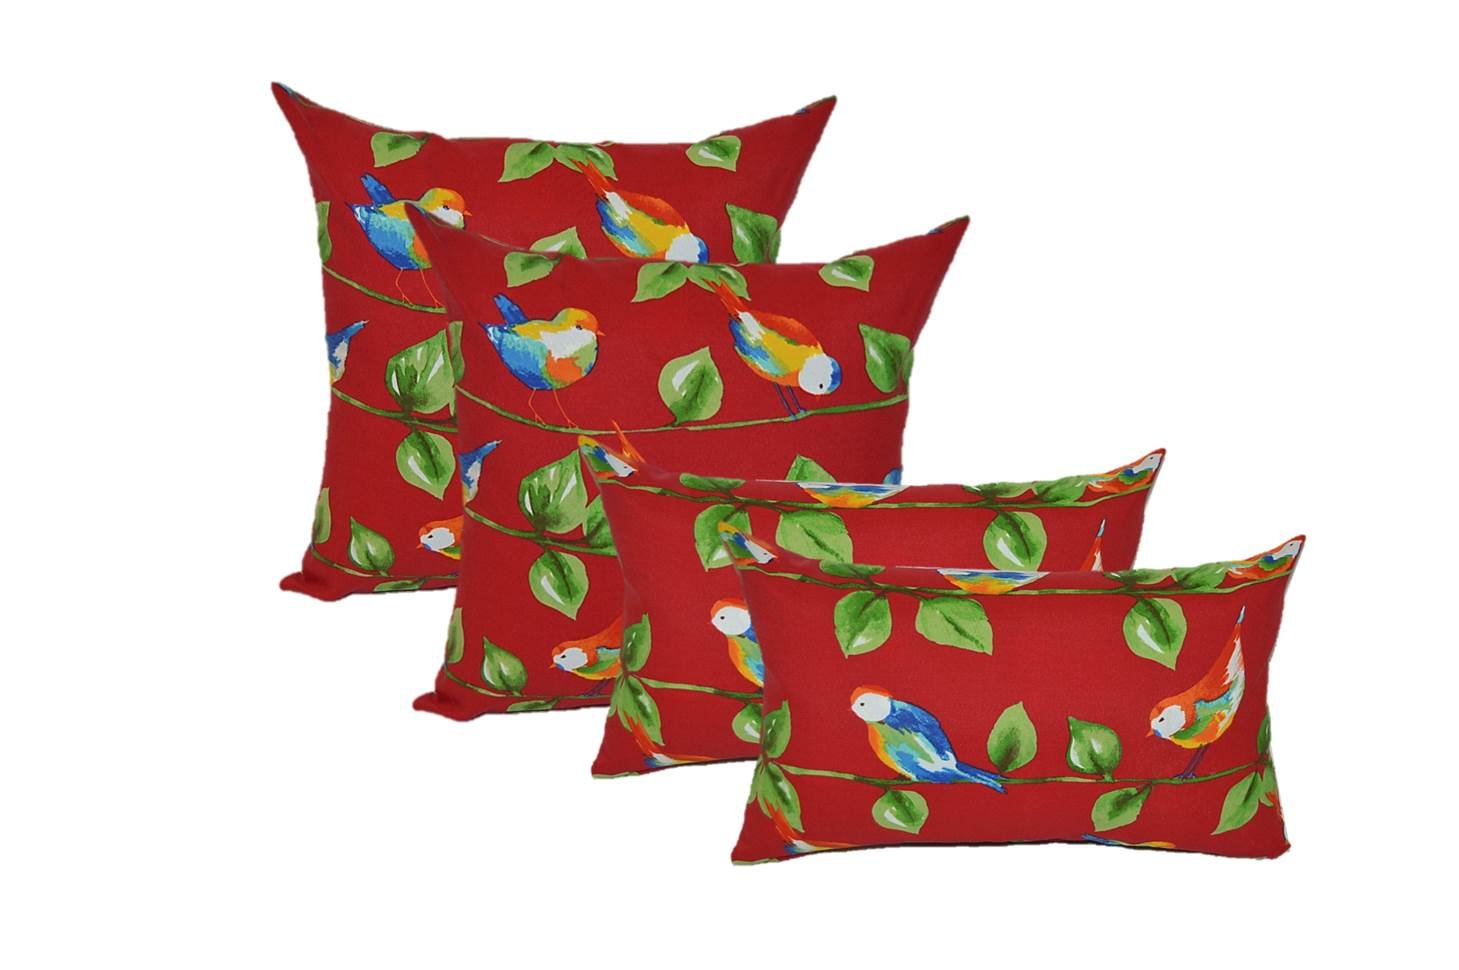 Set of 4 Indoor Outdoor Pillows 2 Square & 2 Rectangle Lumbar Decorative Throw Pillows - Berry Red Curious Birds - Blue, Green, Yellow, White - Choose Size (17'' x 17'' square & 11'' x 19'' lumbar)